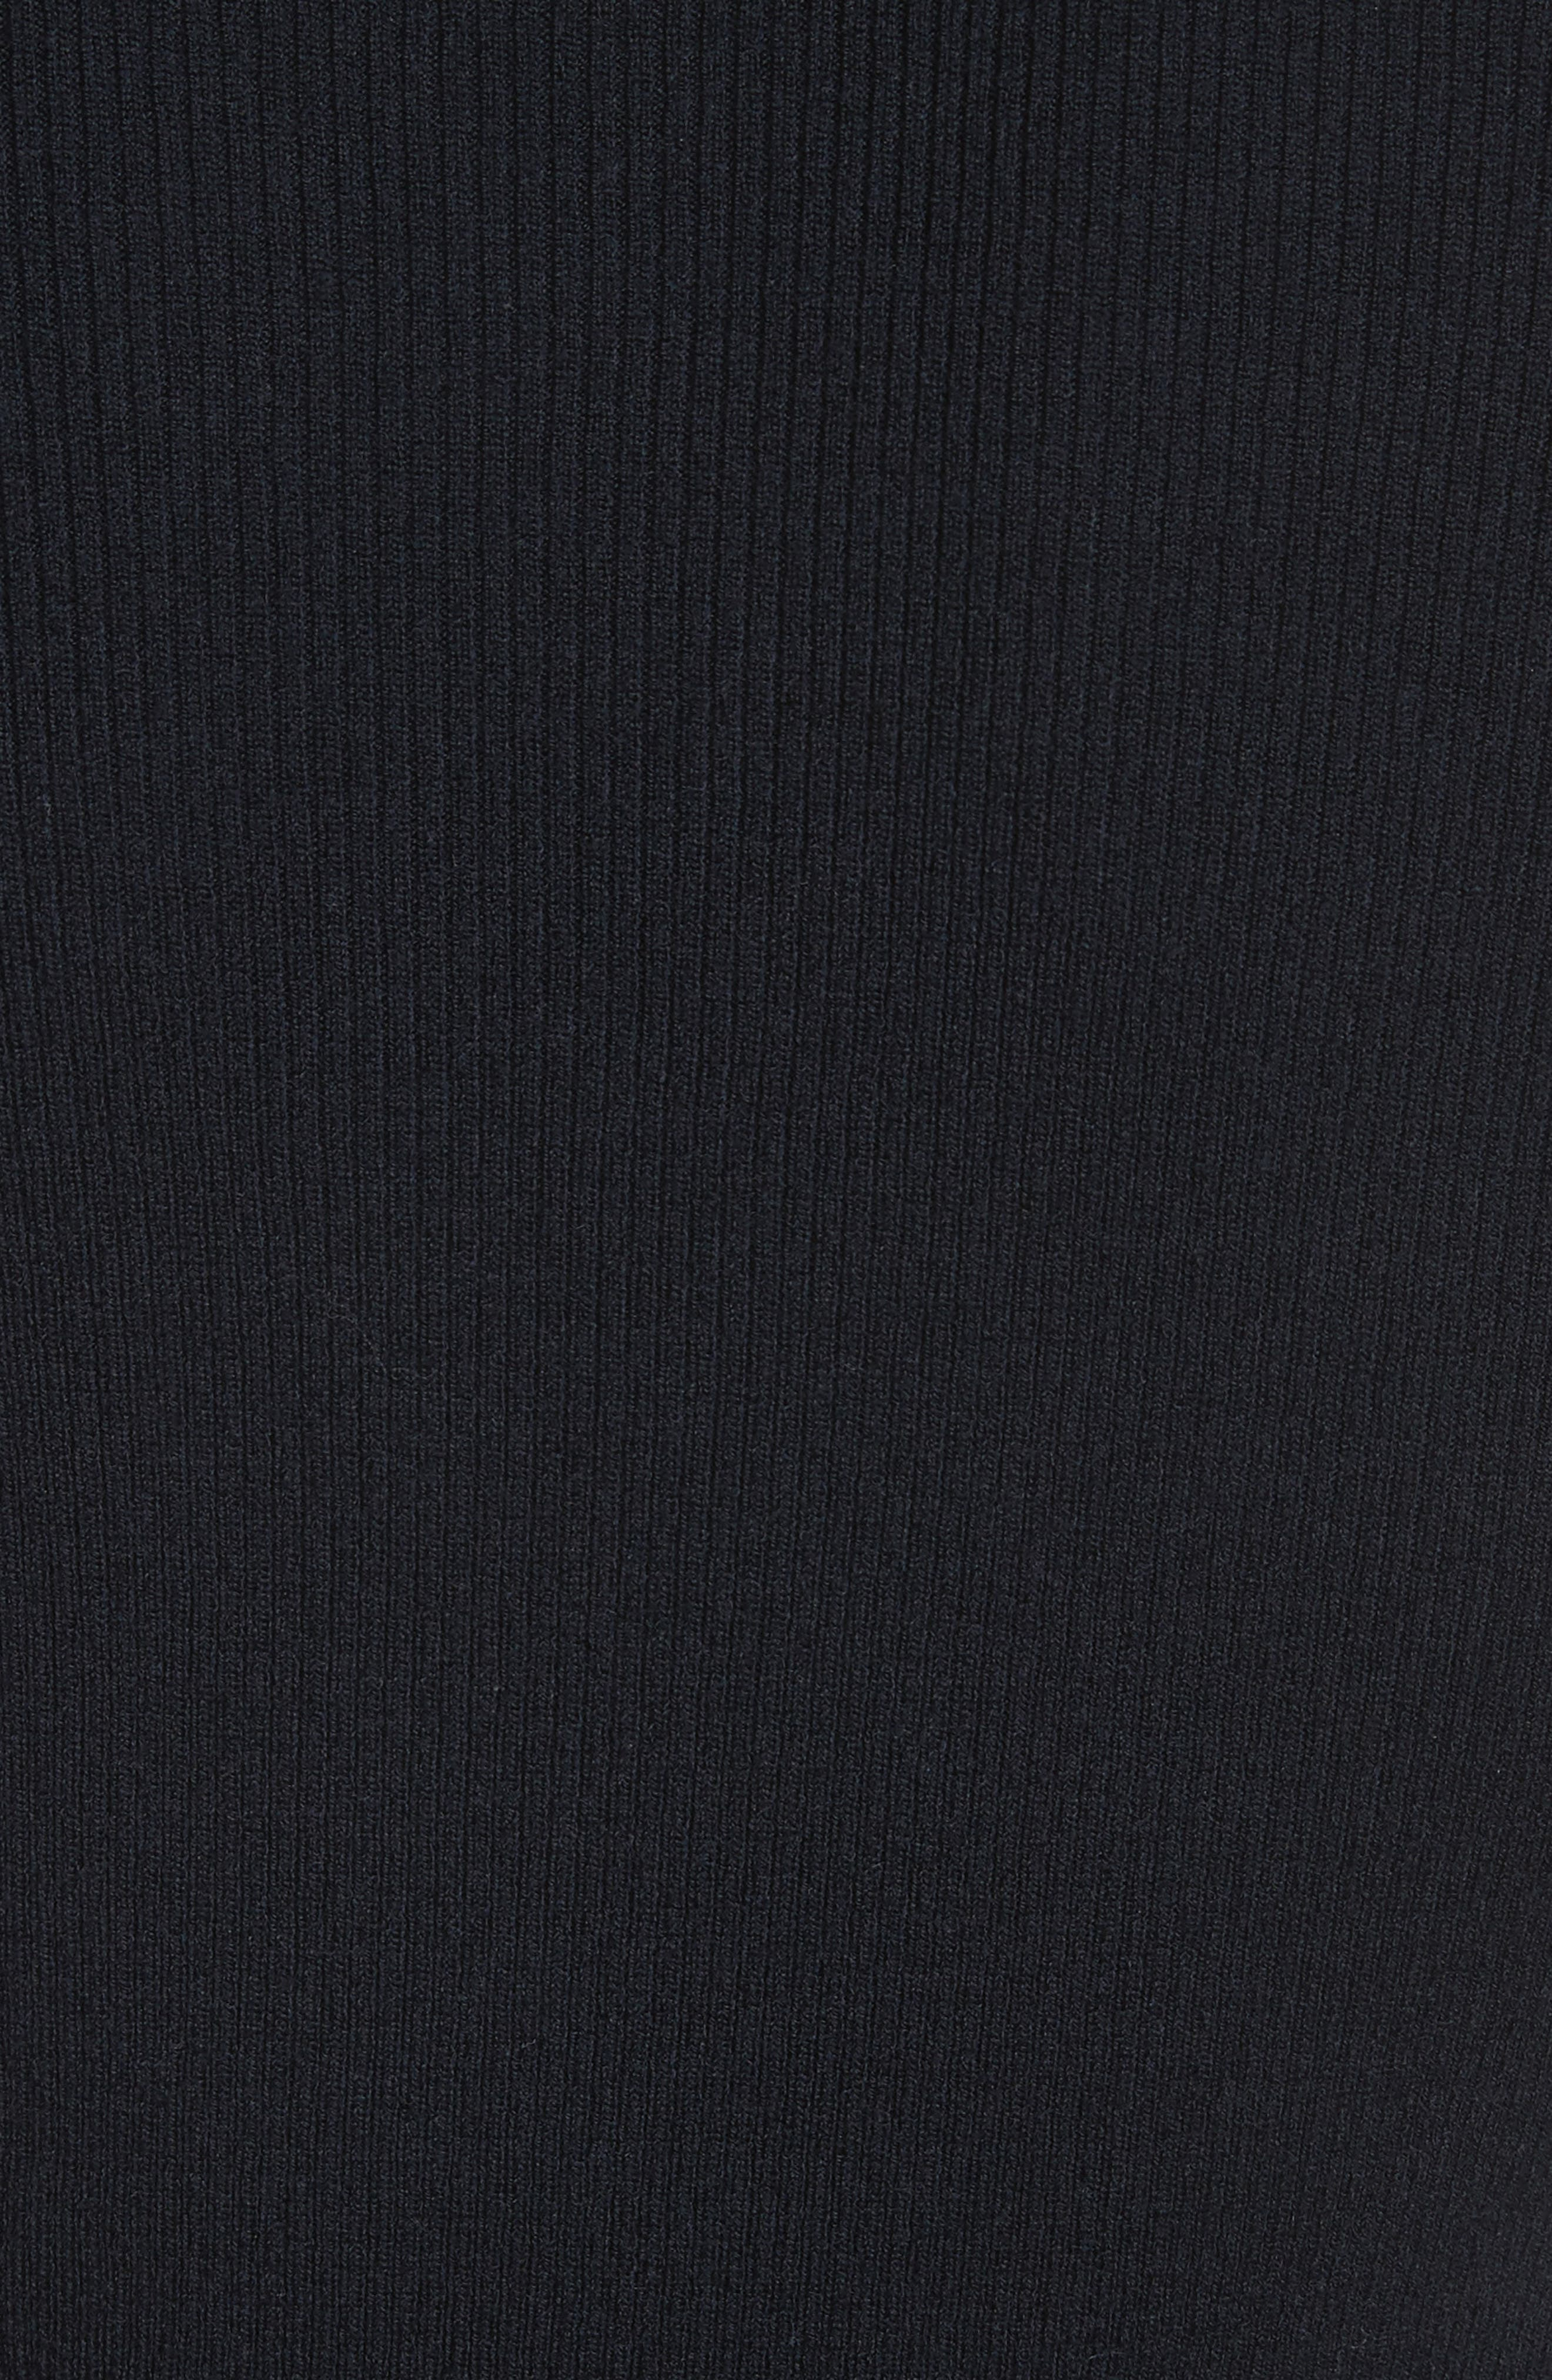 Nell Cutout Merino Wool Blend Sweater,                             Alternate thumbnail 5, color,                             Navy